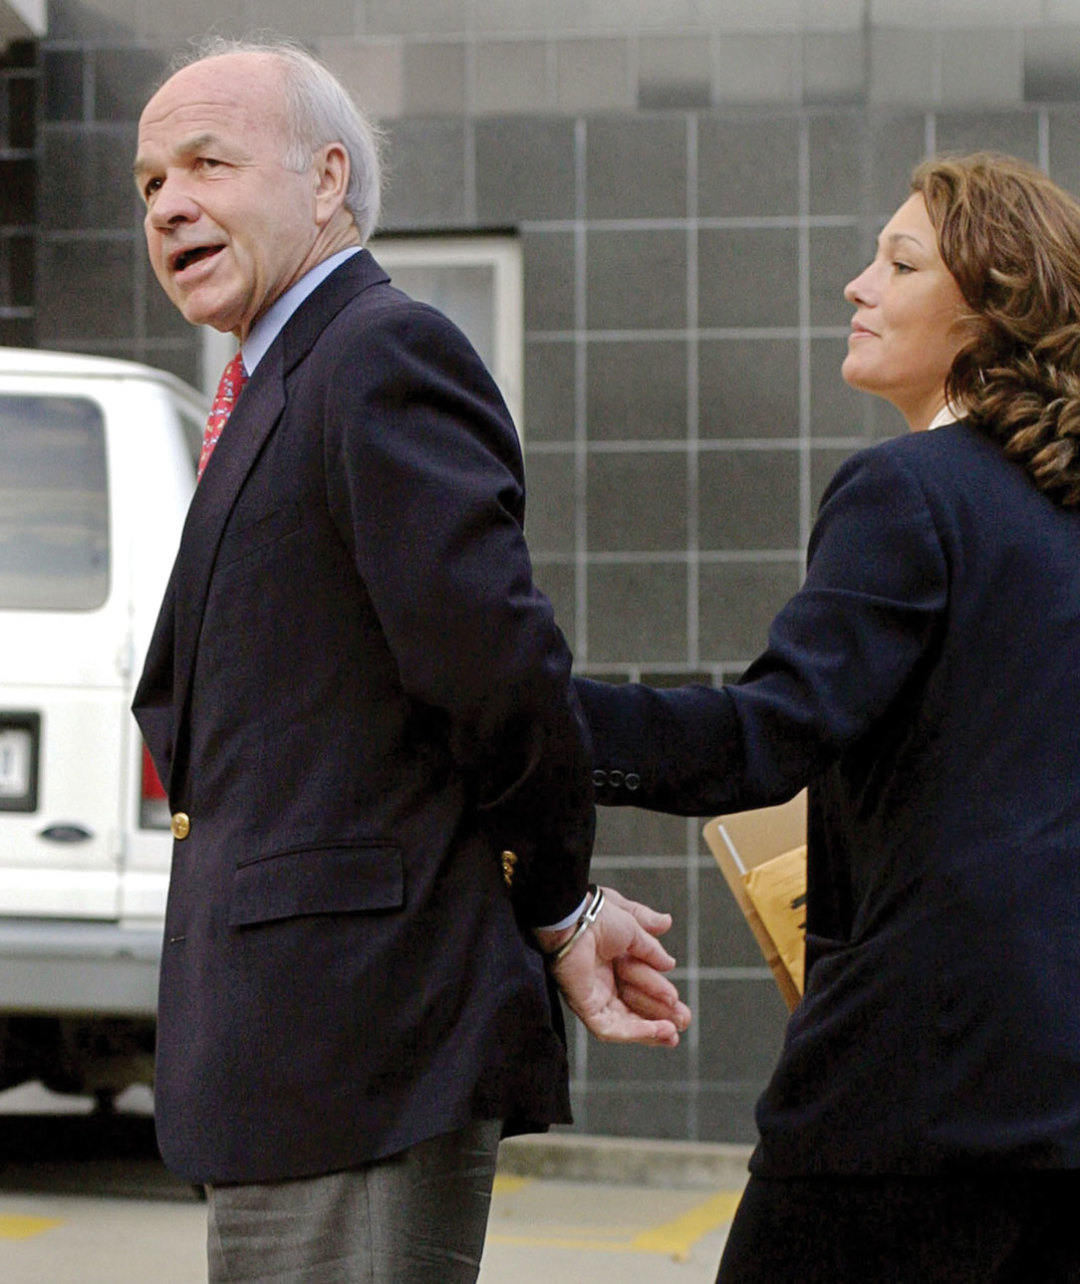 0715 history kenneth lay enron arrest mrzd6u